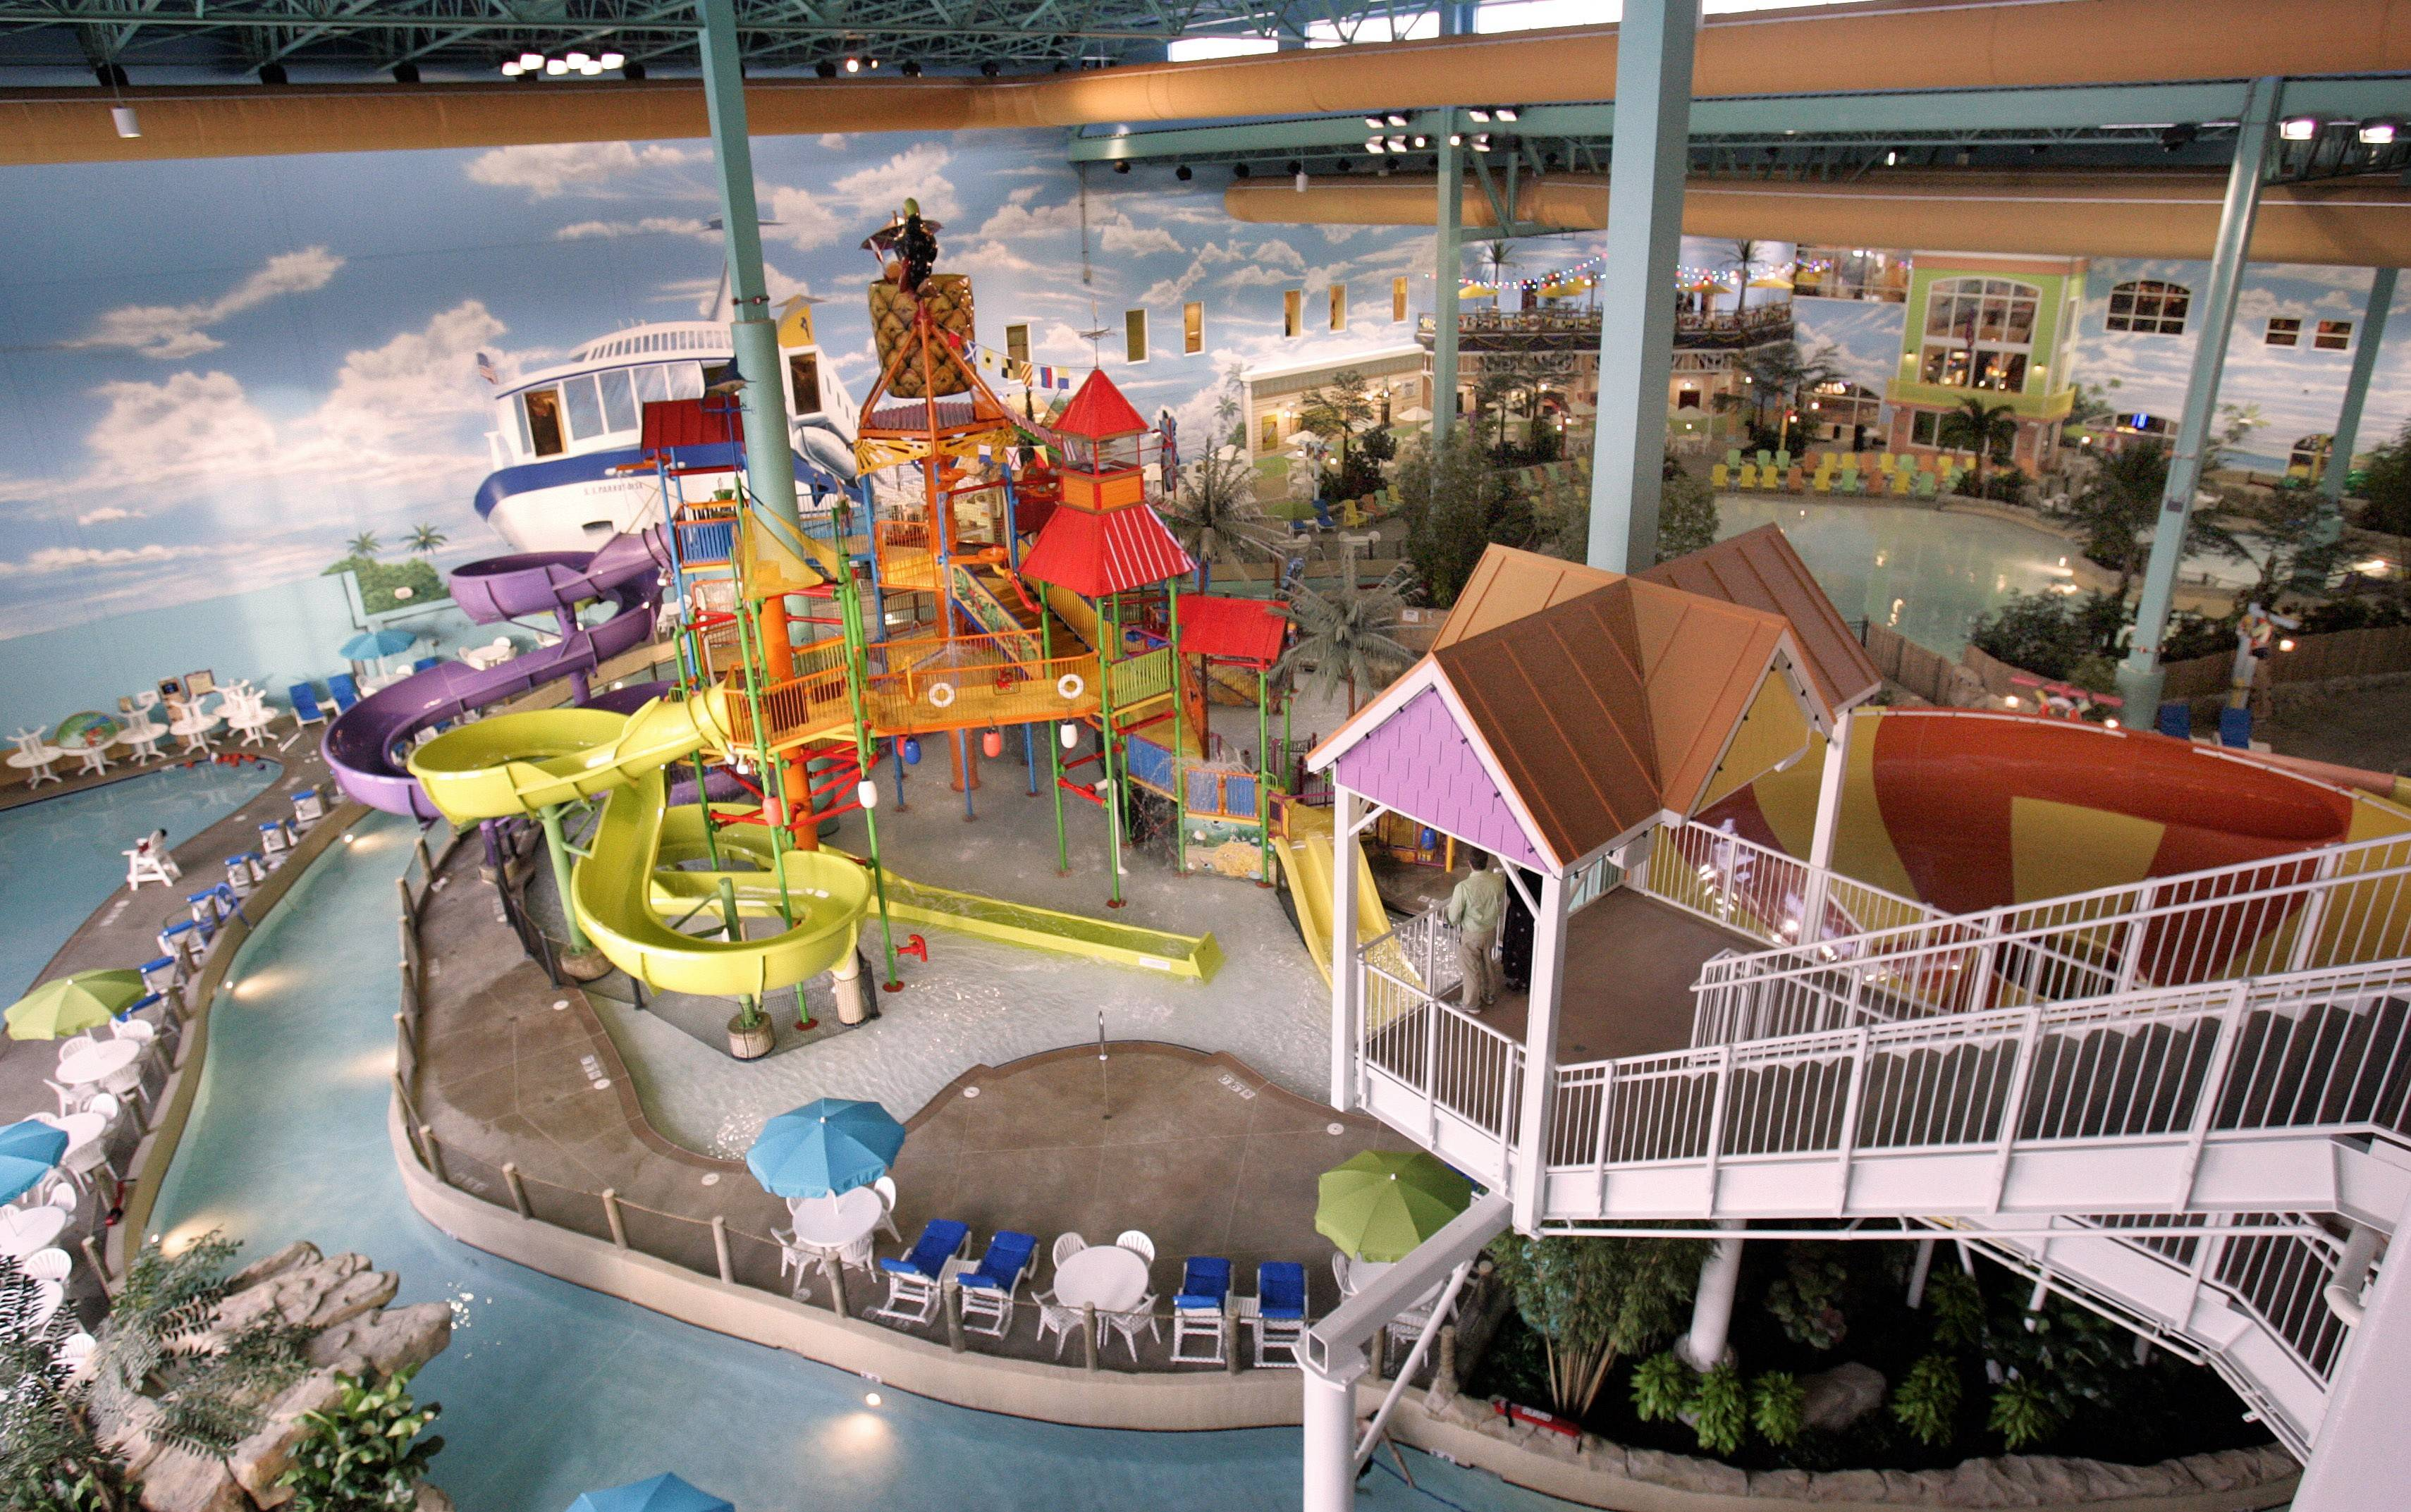 This was the scene when KeyLime Cove Indoor Waterpark Resort opened in Gurnee in 2008.